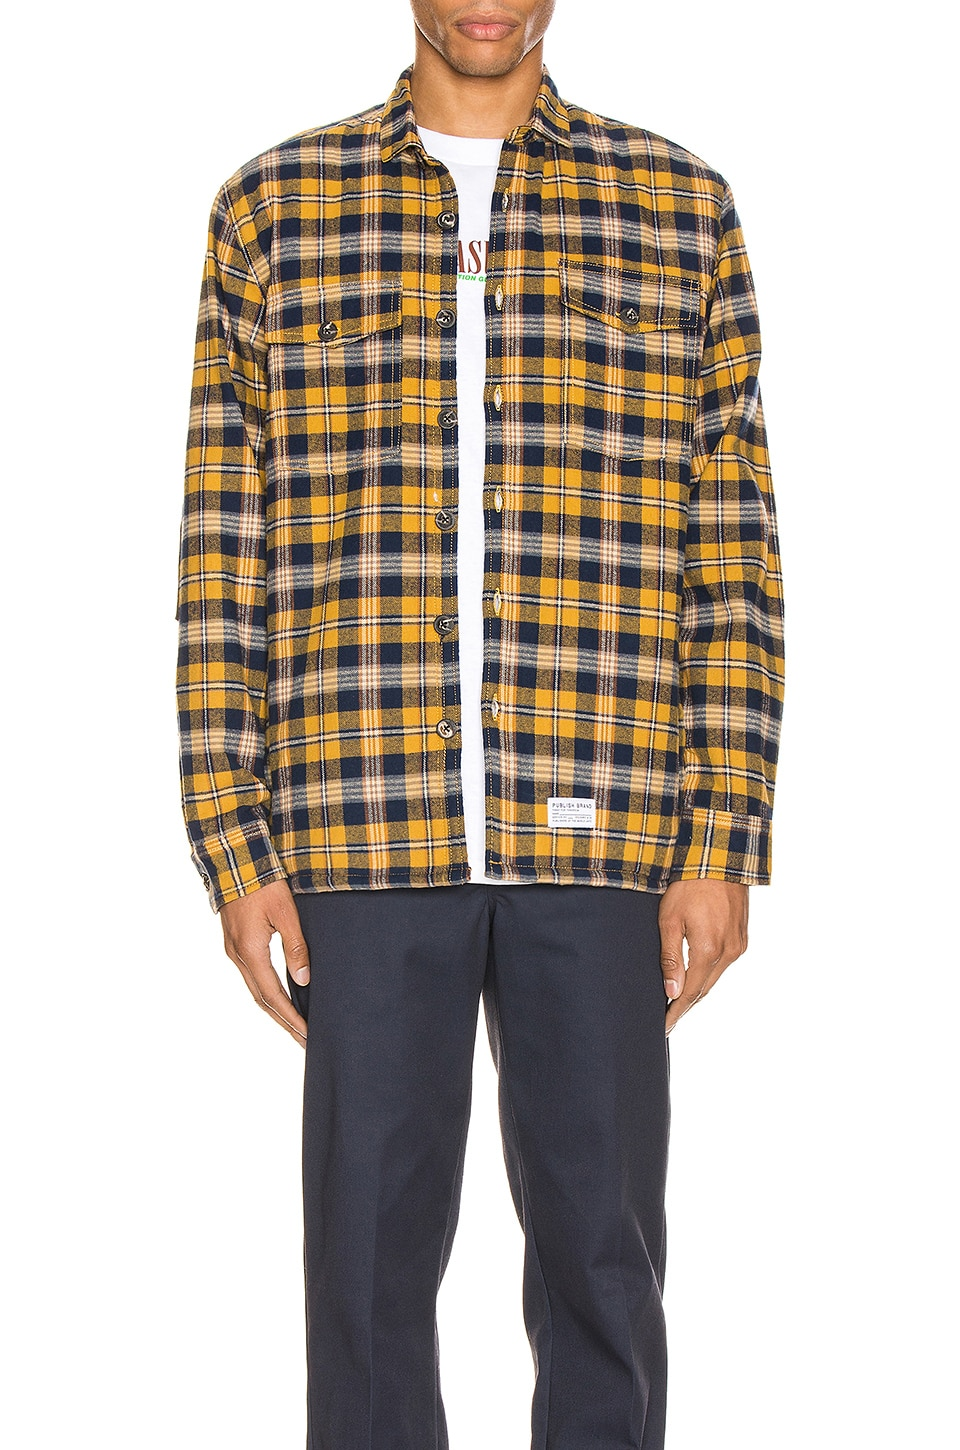 Publish Jasper Jacket in Yellow